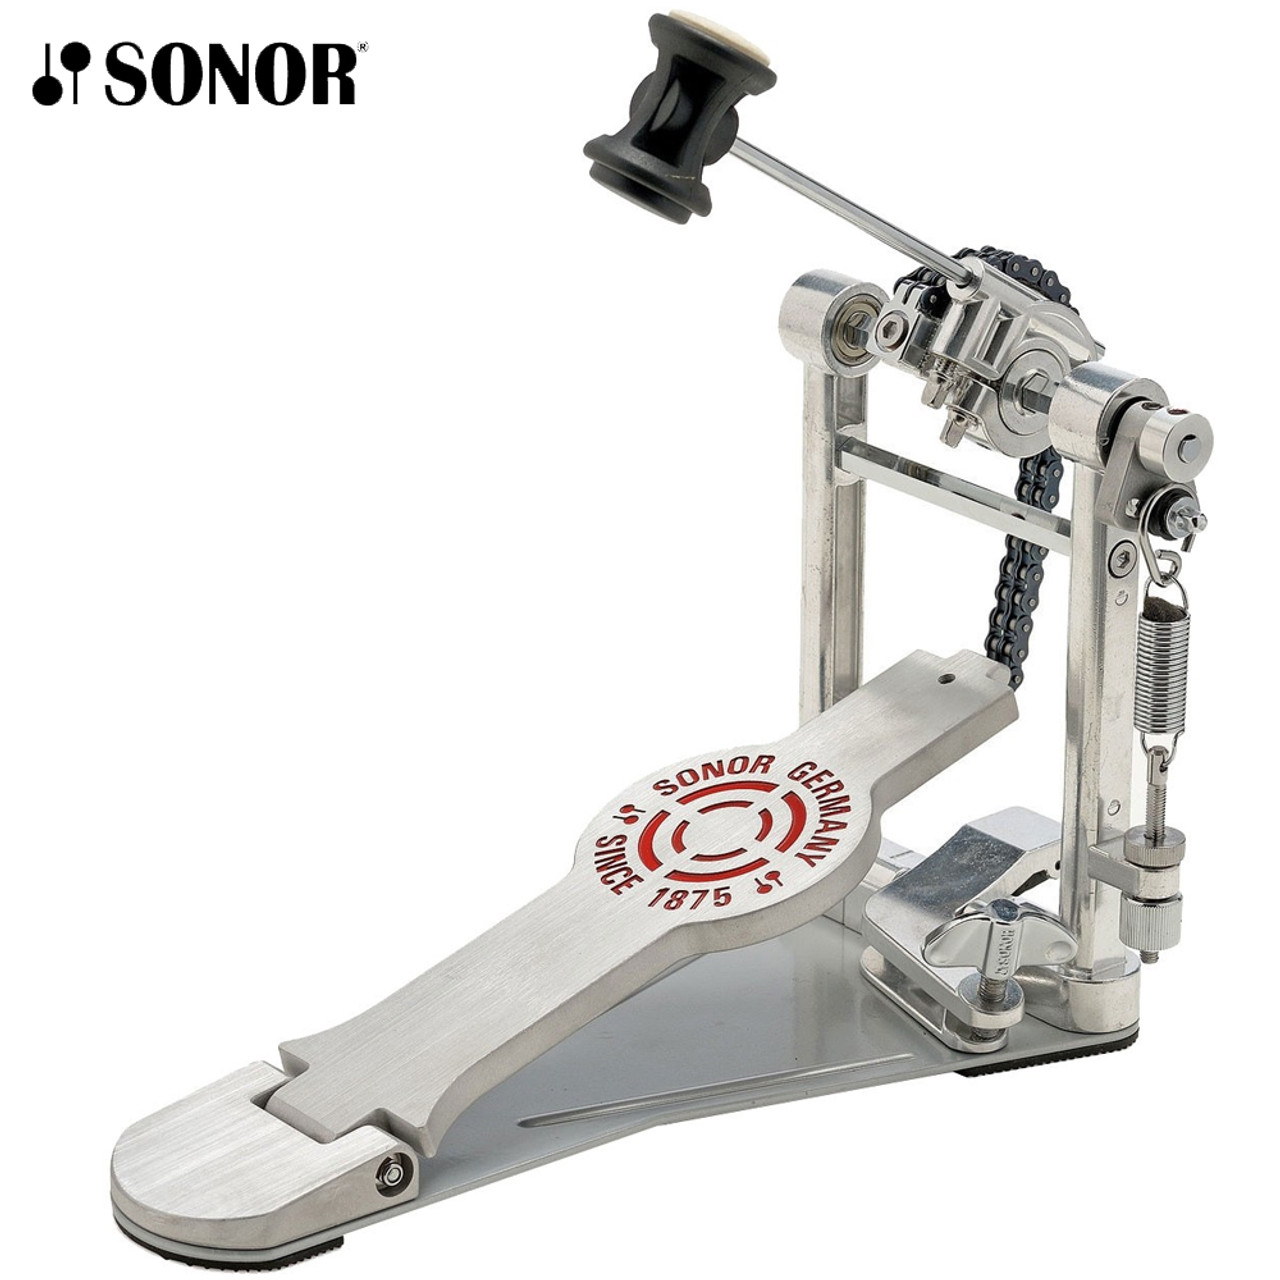 Sonor 4000 Series Double Bass Drum Pedal with 2-Way Beater with Bag DP-4000 R